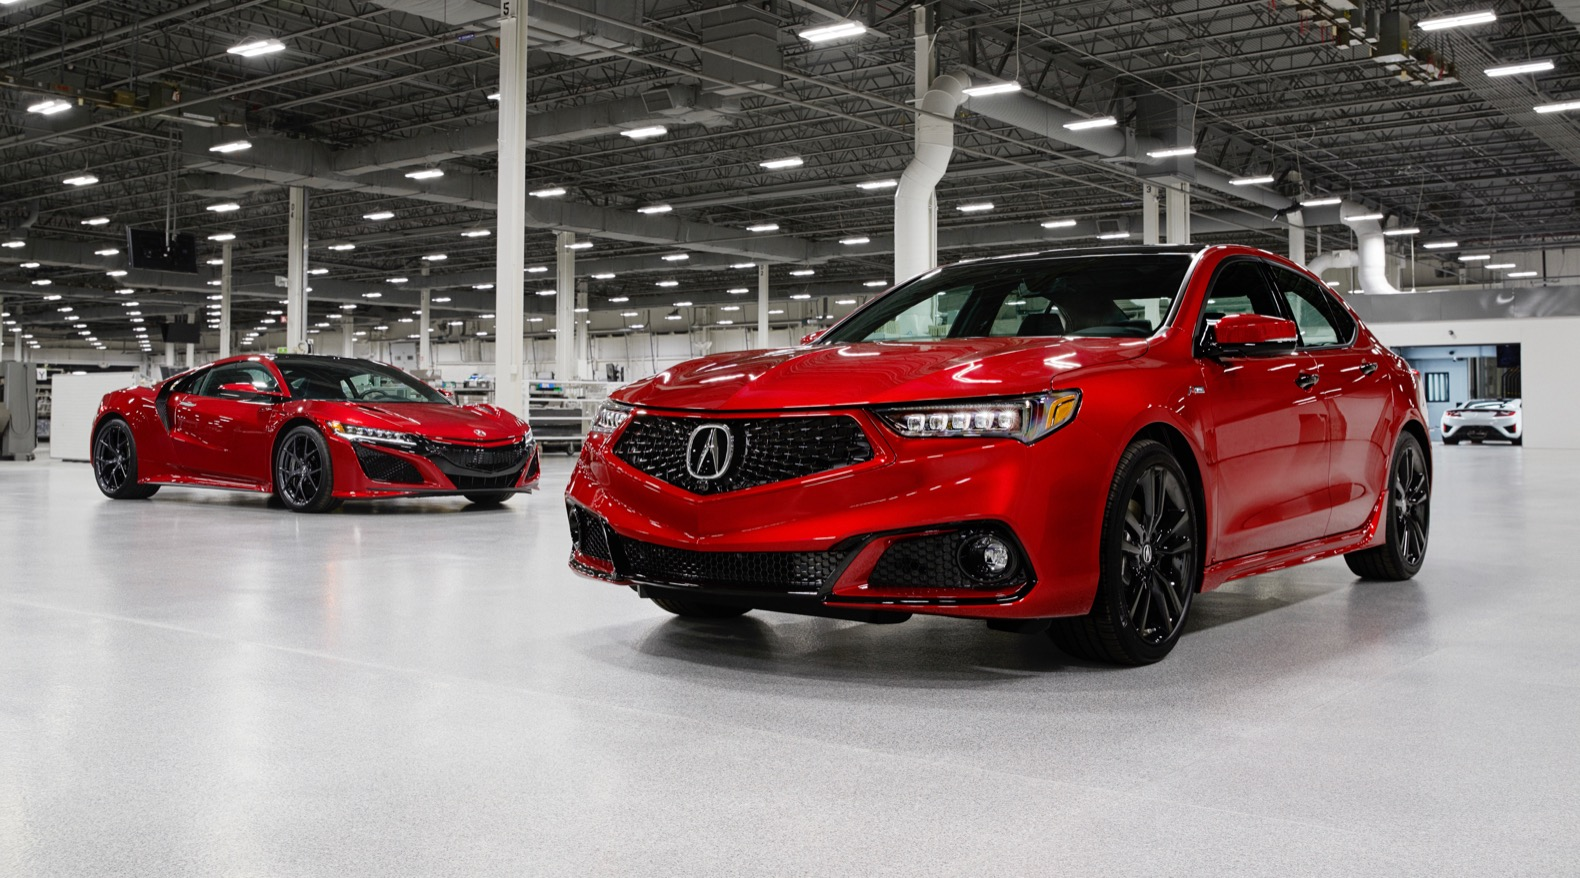 2020 Acura Tlx Pmc Edition Arrives With A 50 945 Price Tag The